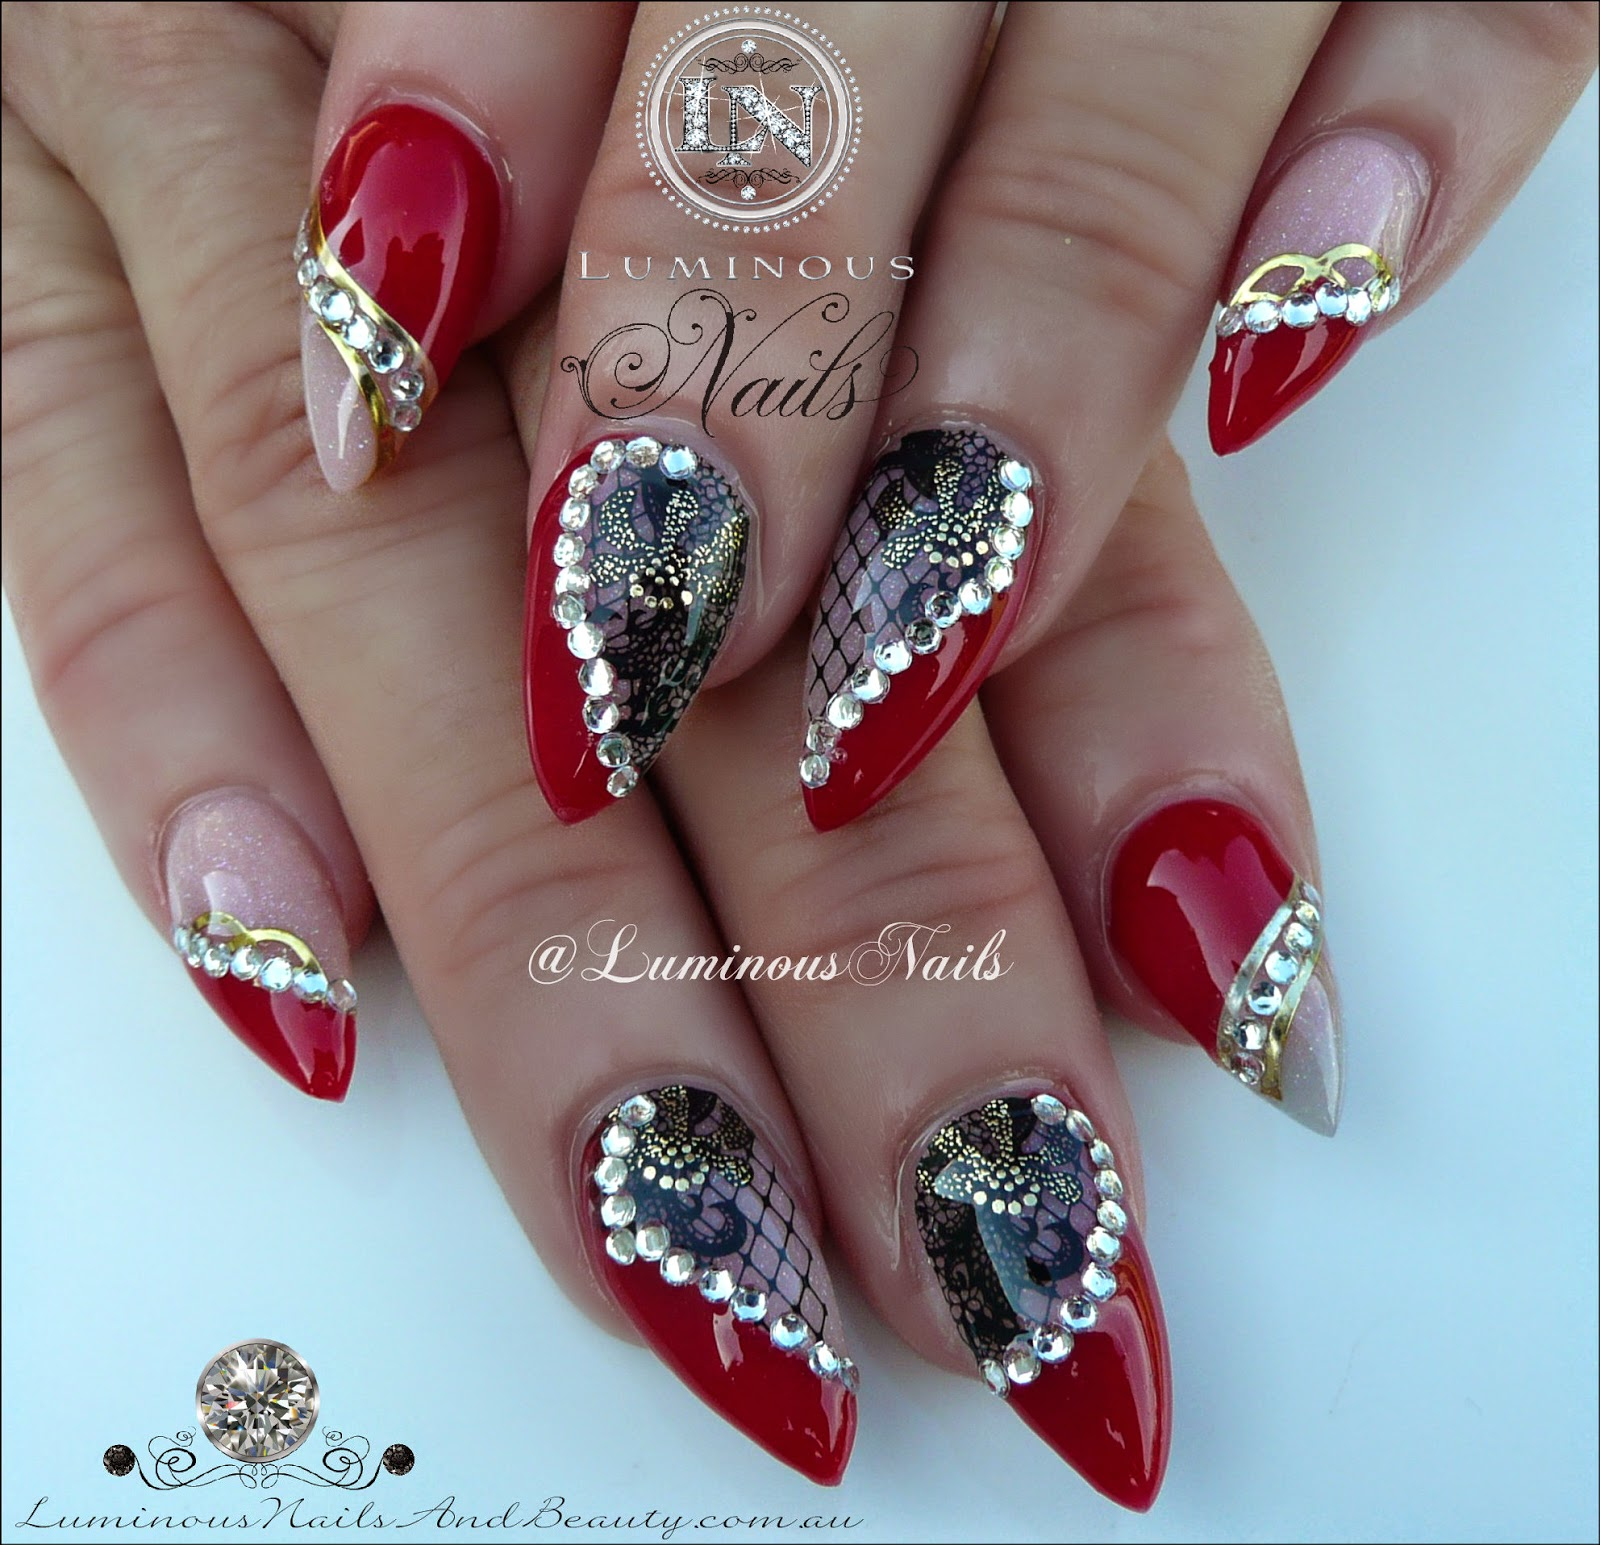 luminous nails: red, black & gold nails